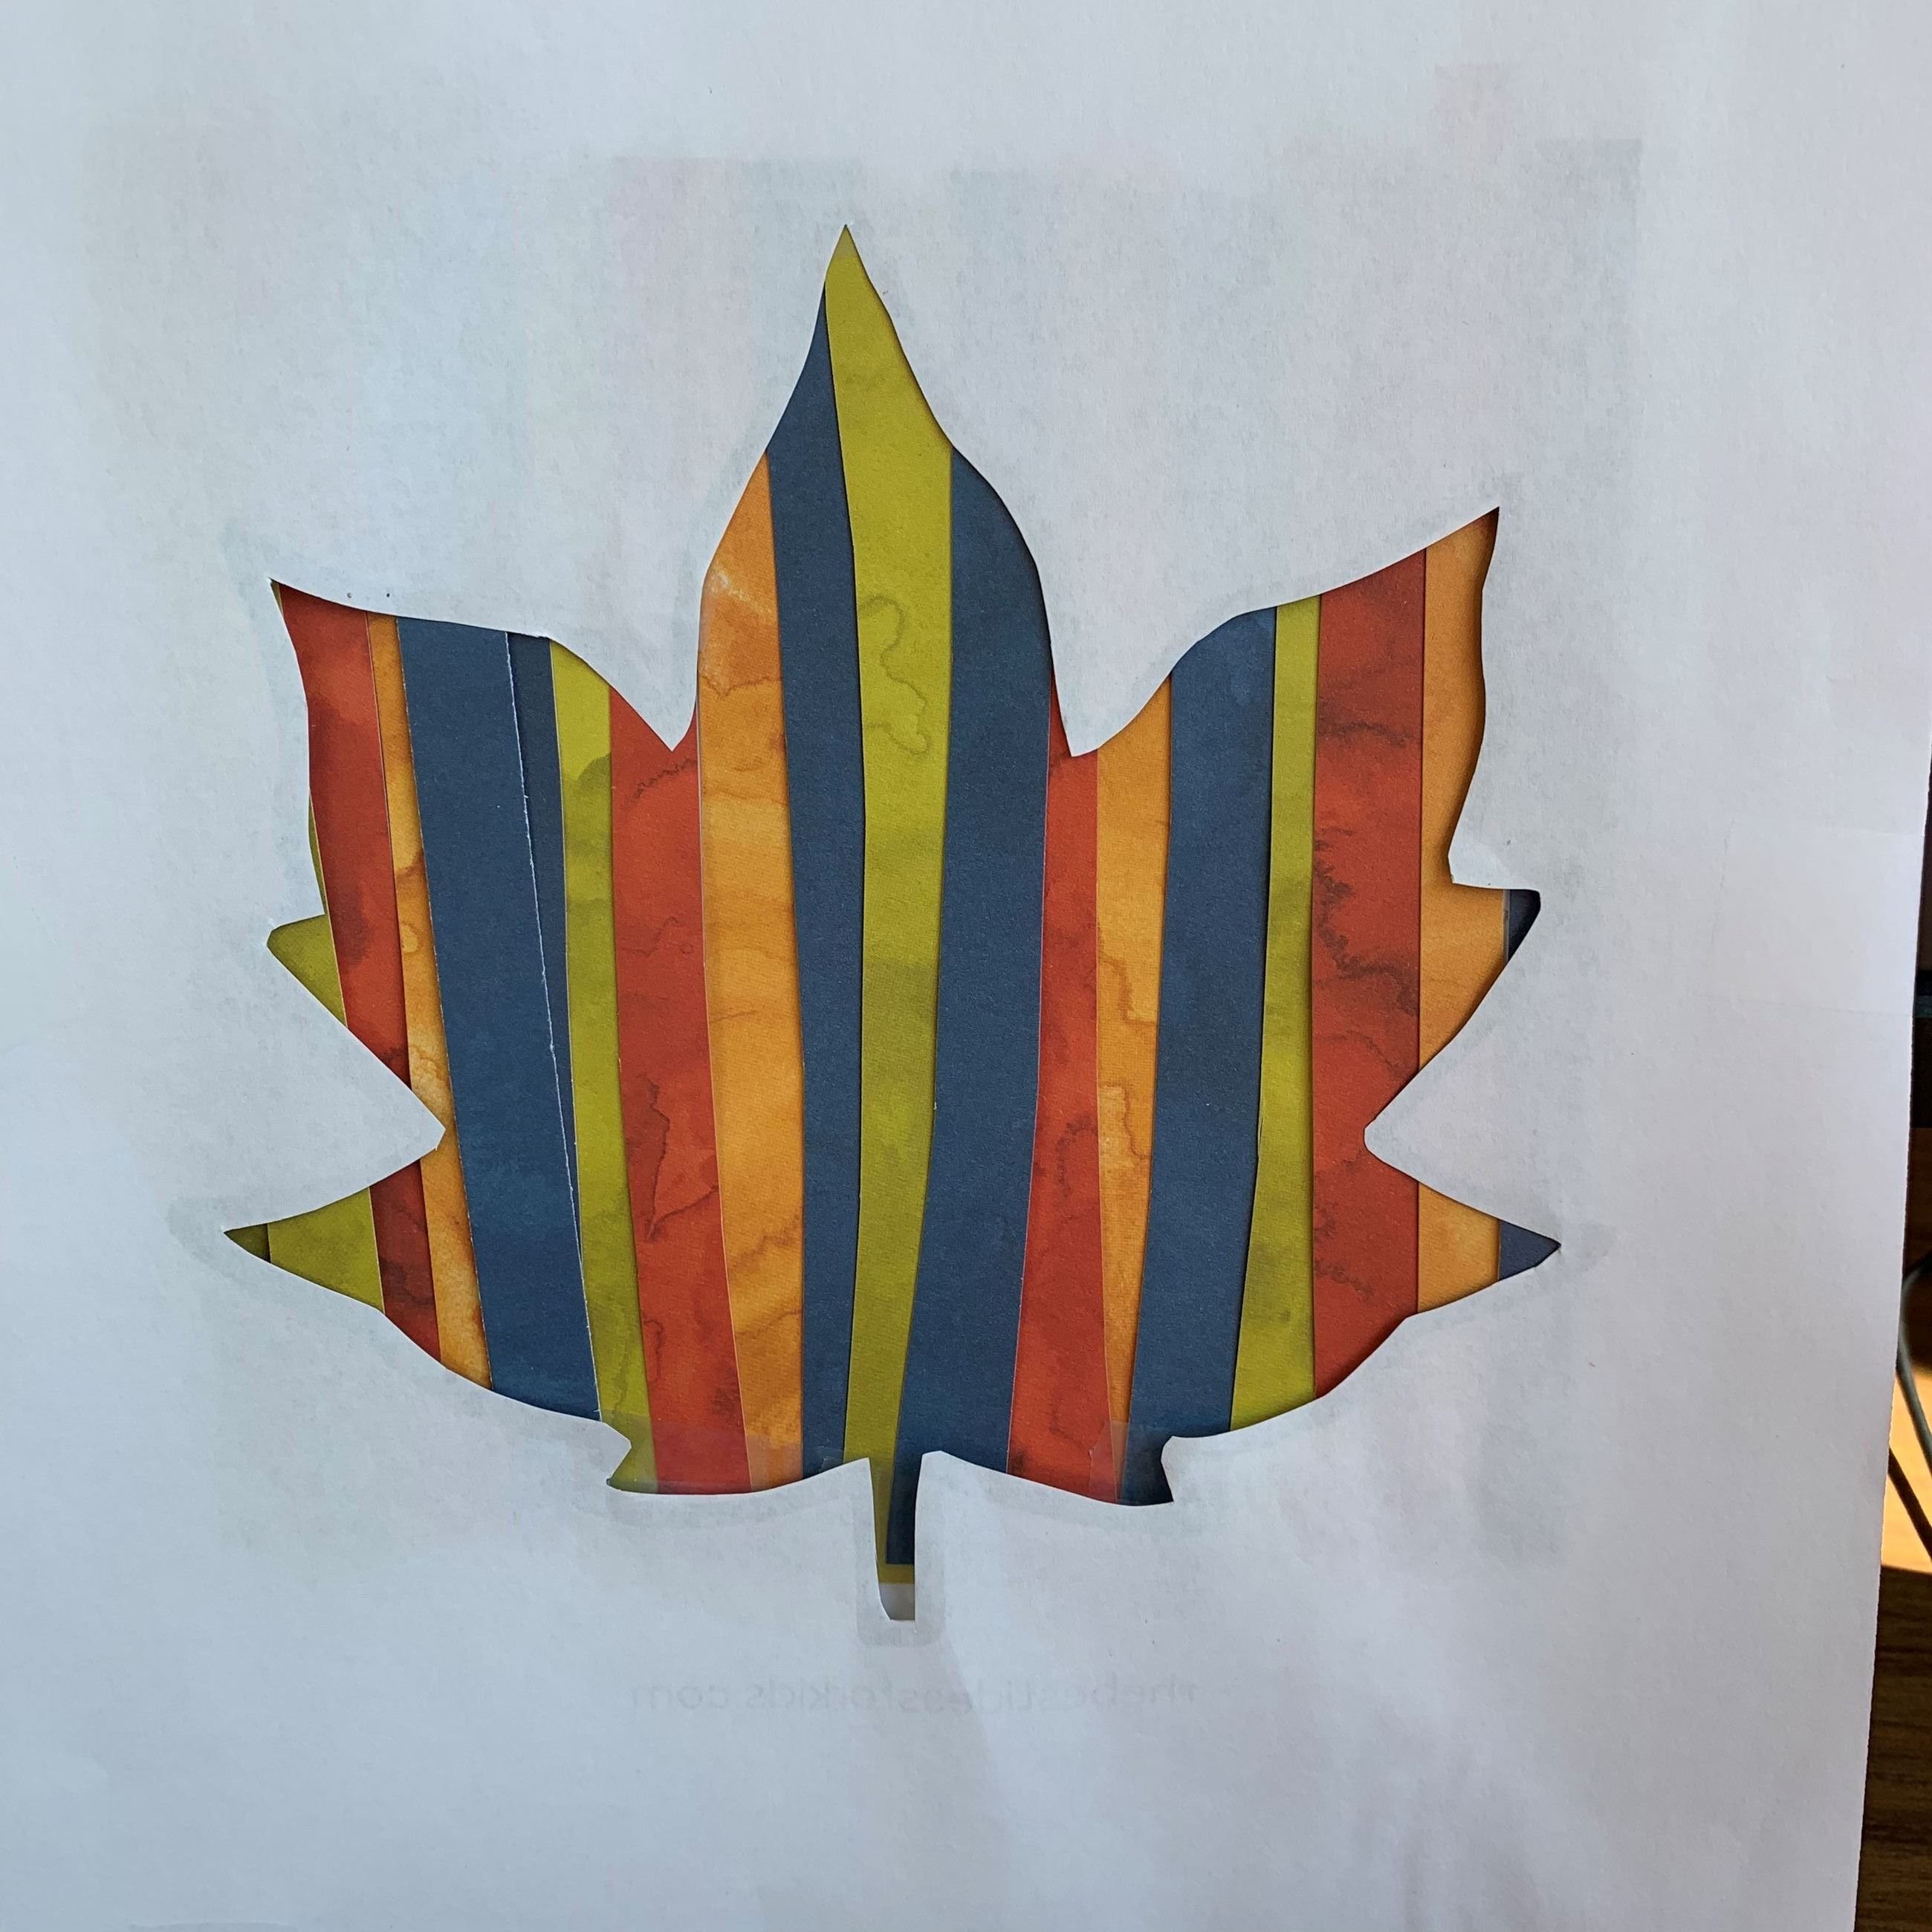 cut out of maple leaf with red, green, blue, and orange strips of paper